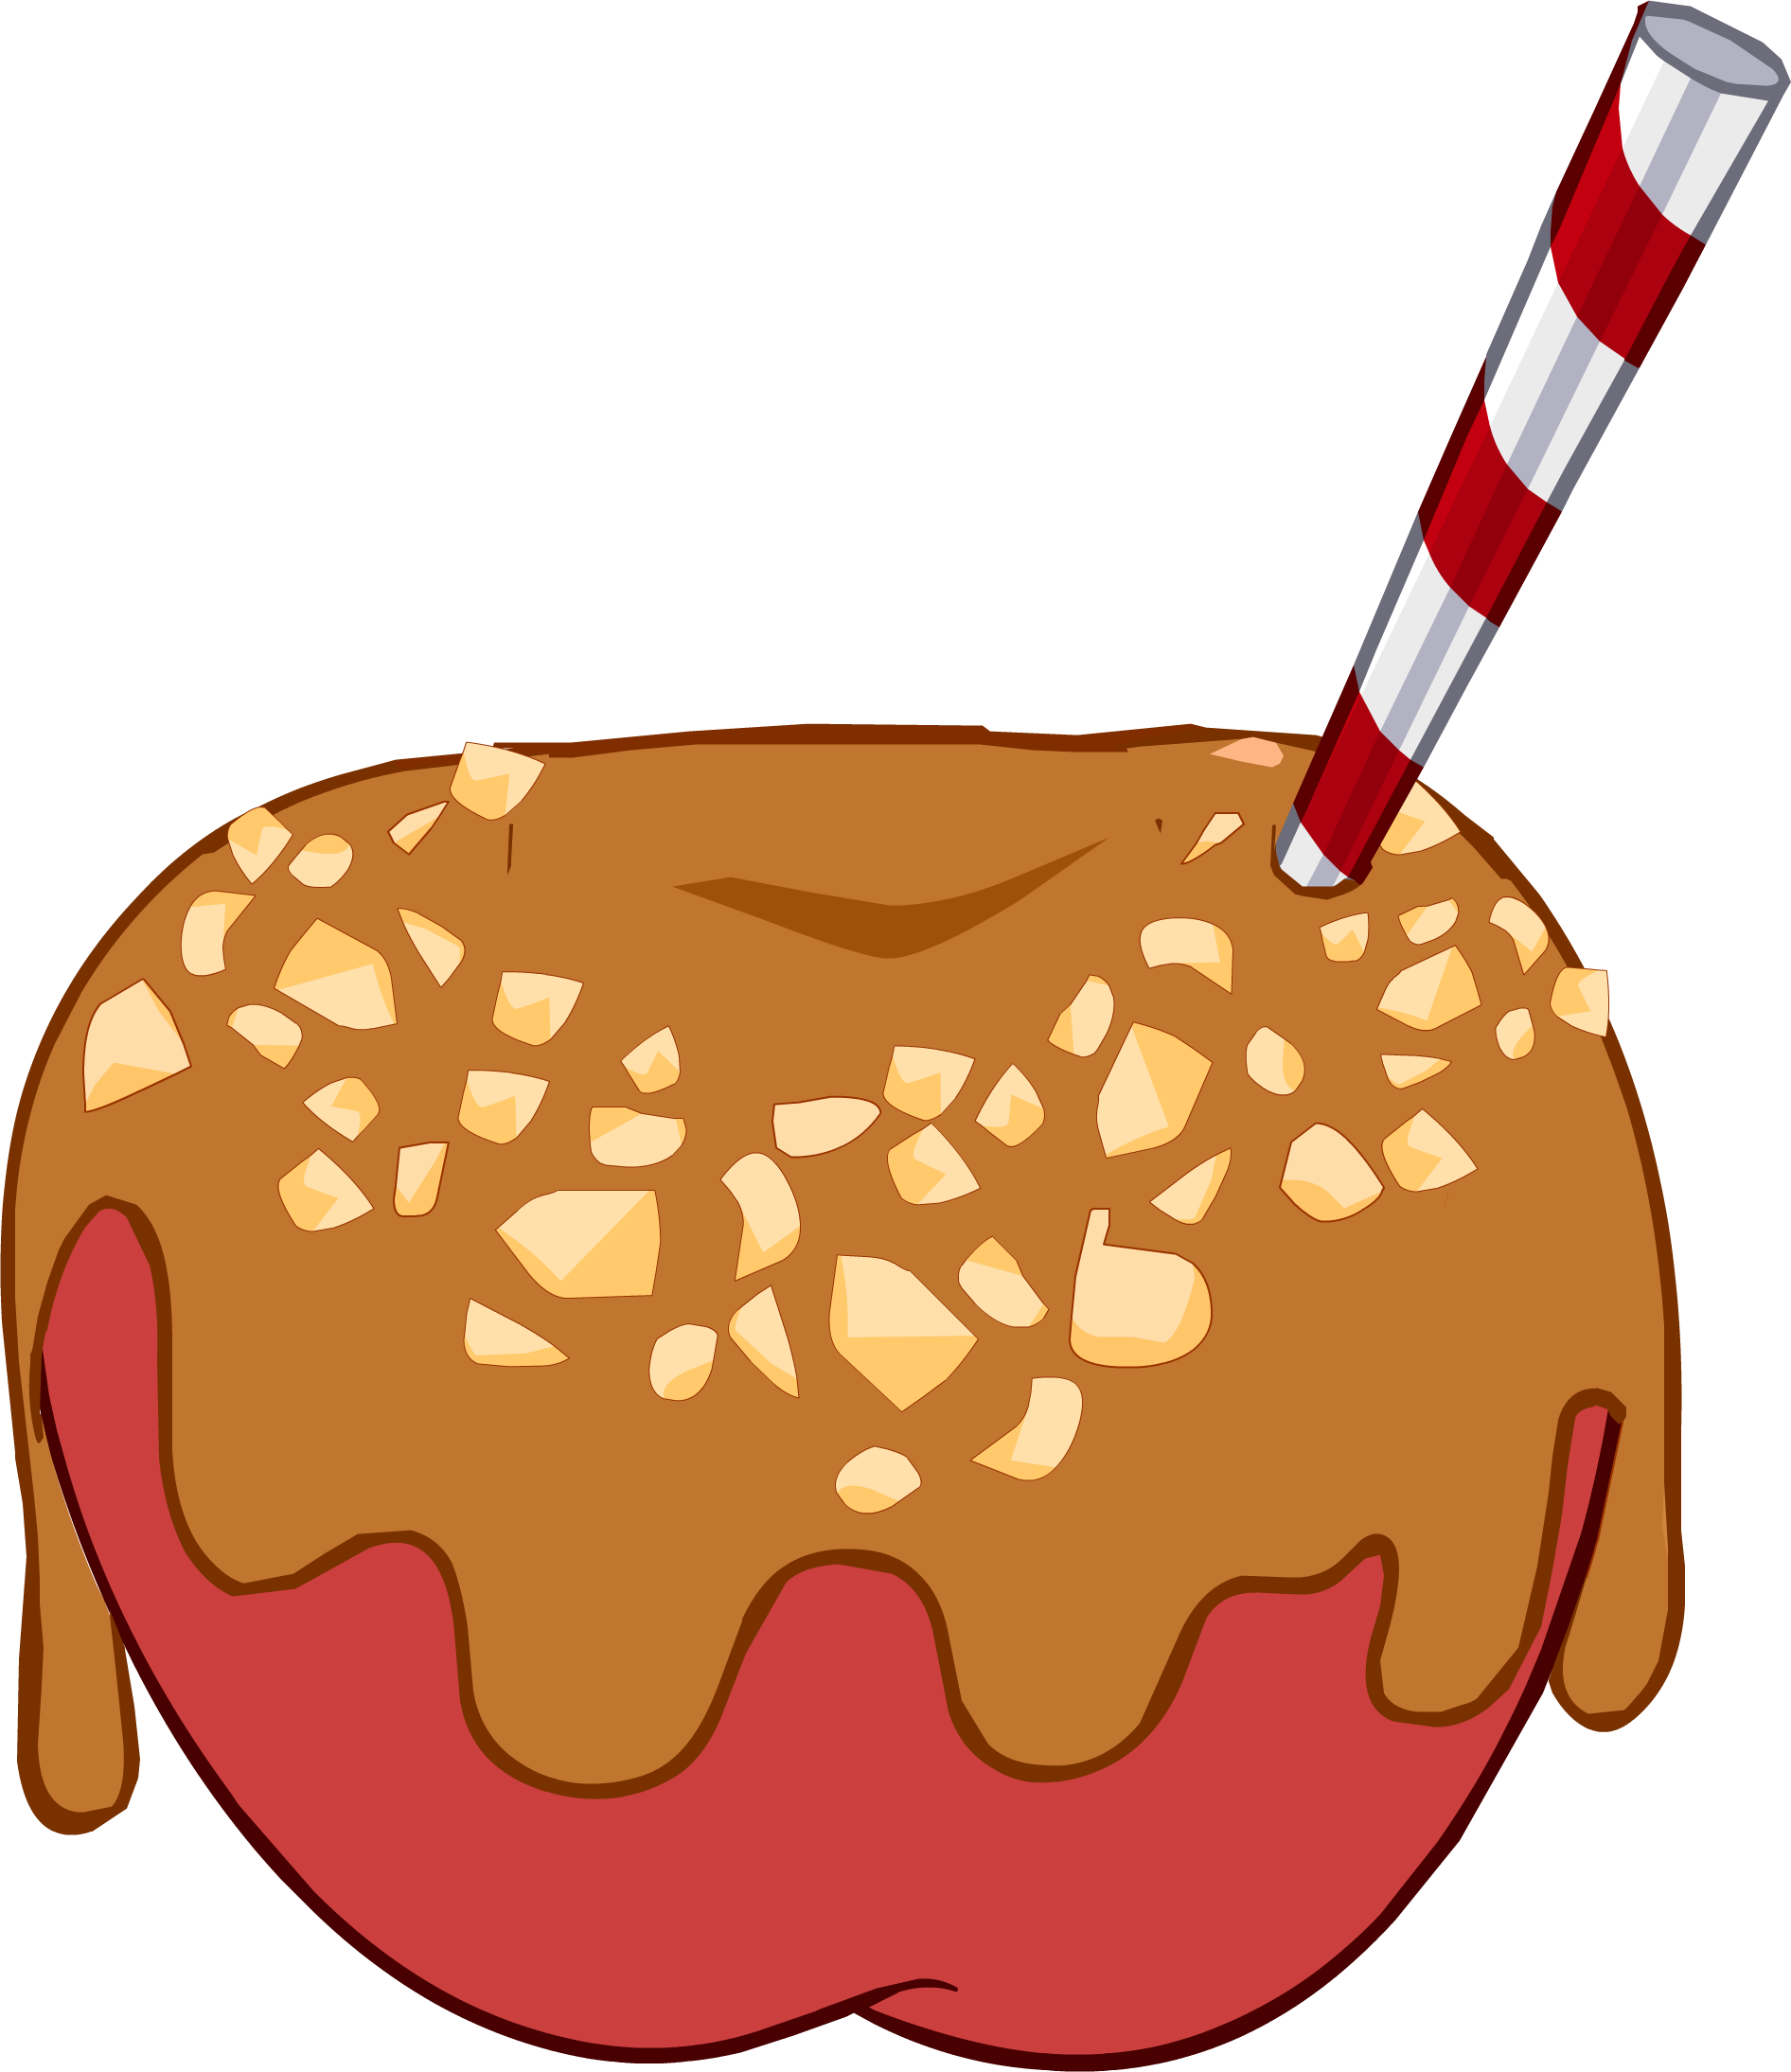 image caramel apple costume icon png club penguin wiki